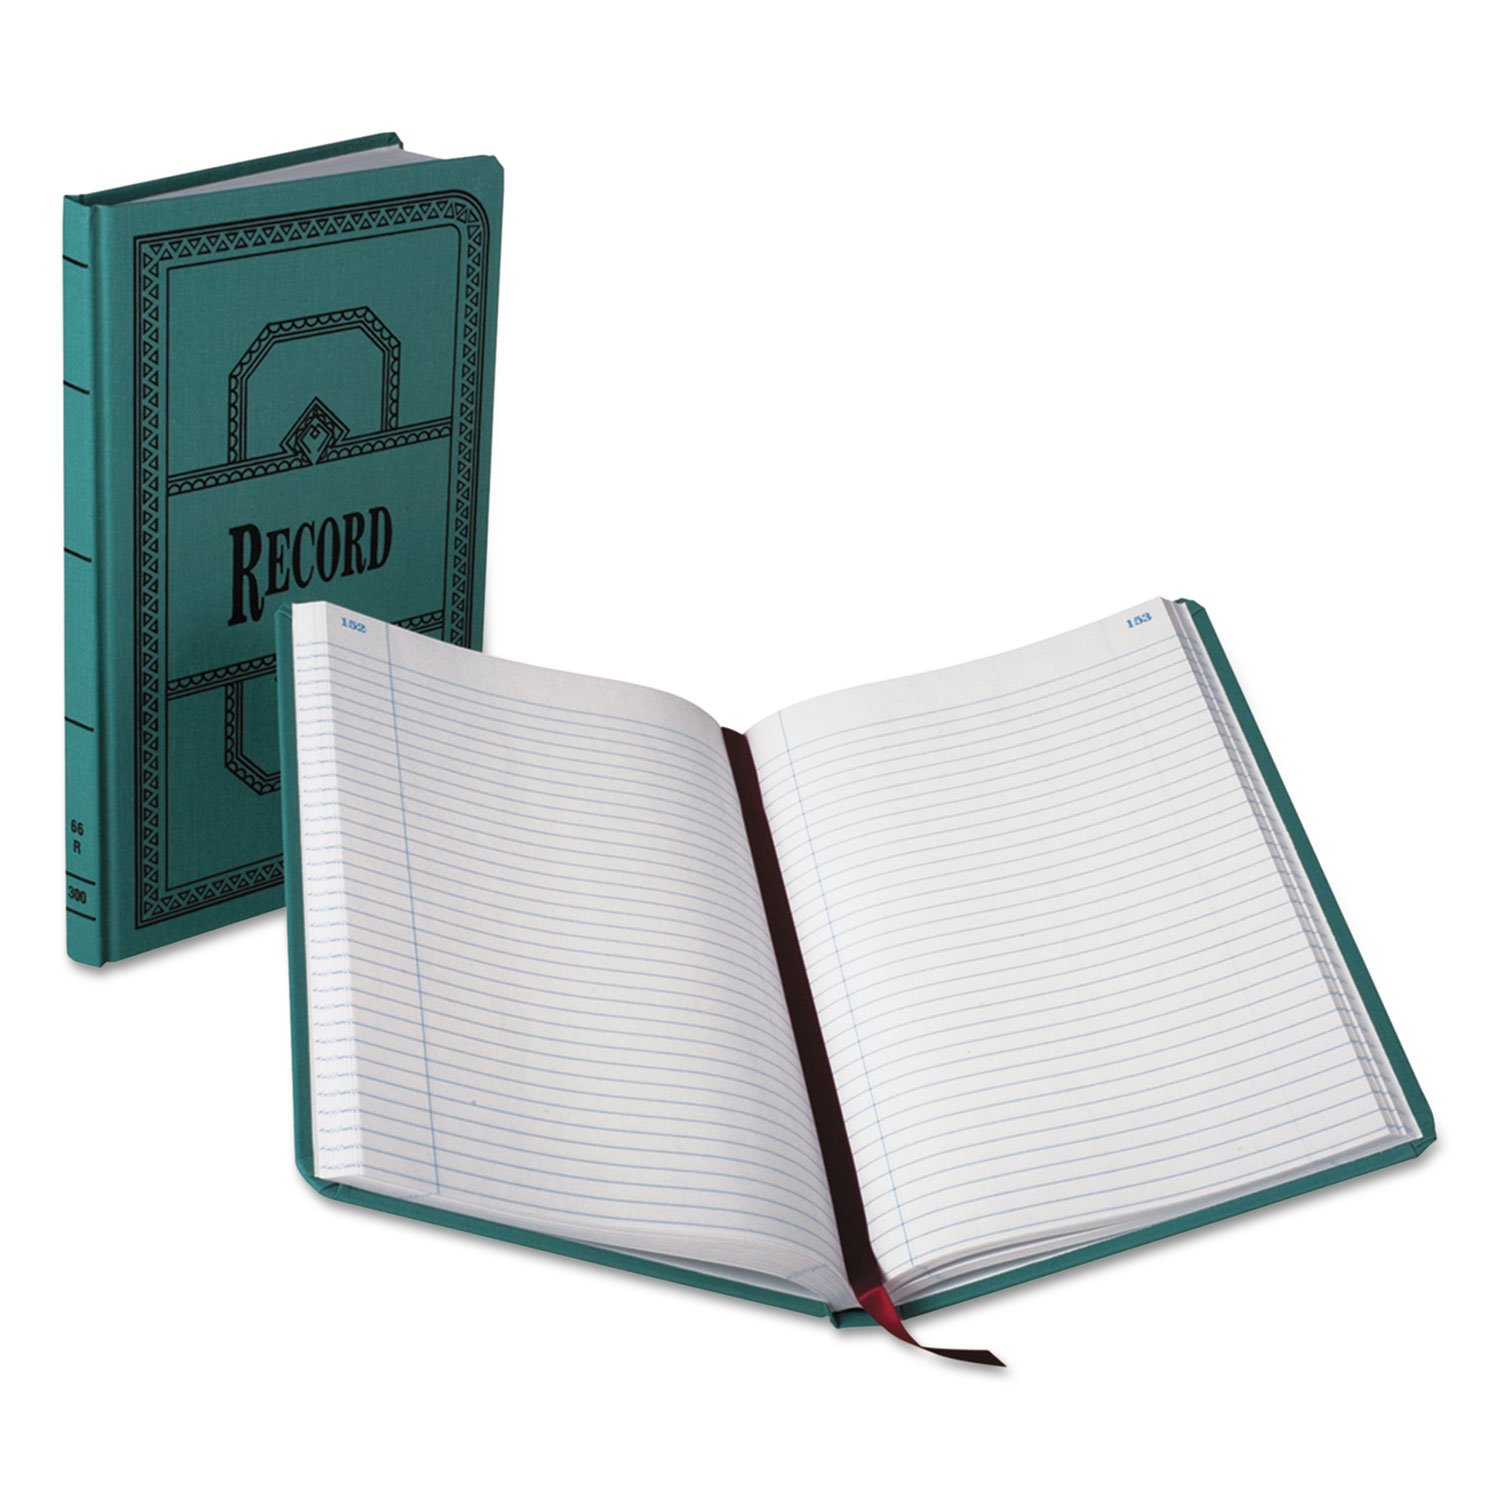 Boorum & Pease 66300R Account Book, Record-Ruled, 300 Pages, 12-1/8''x7-5/8'', Blue